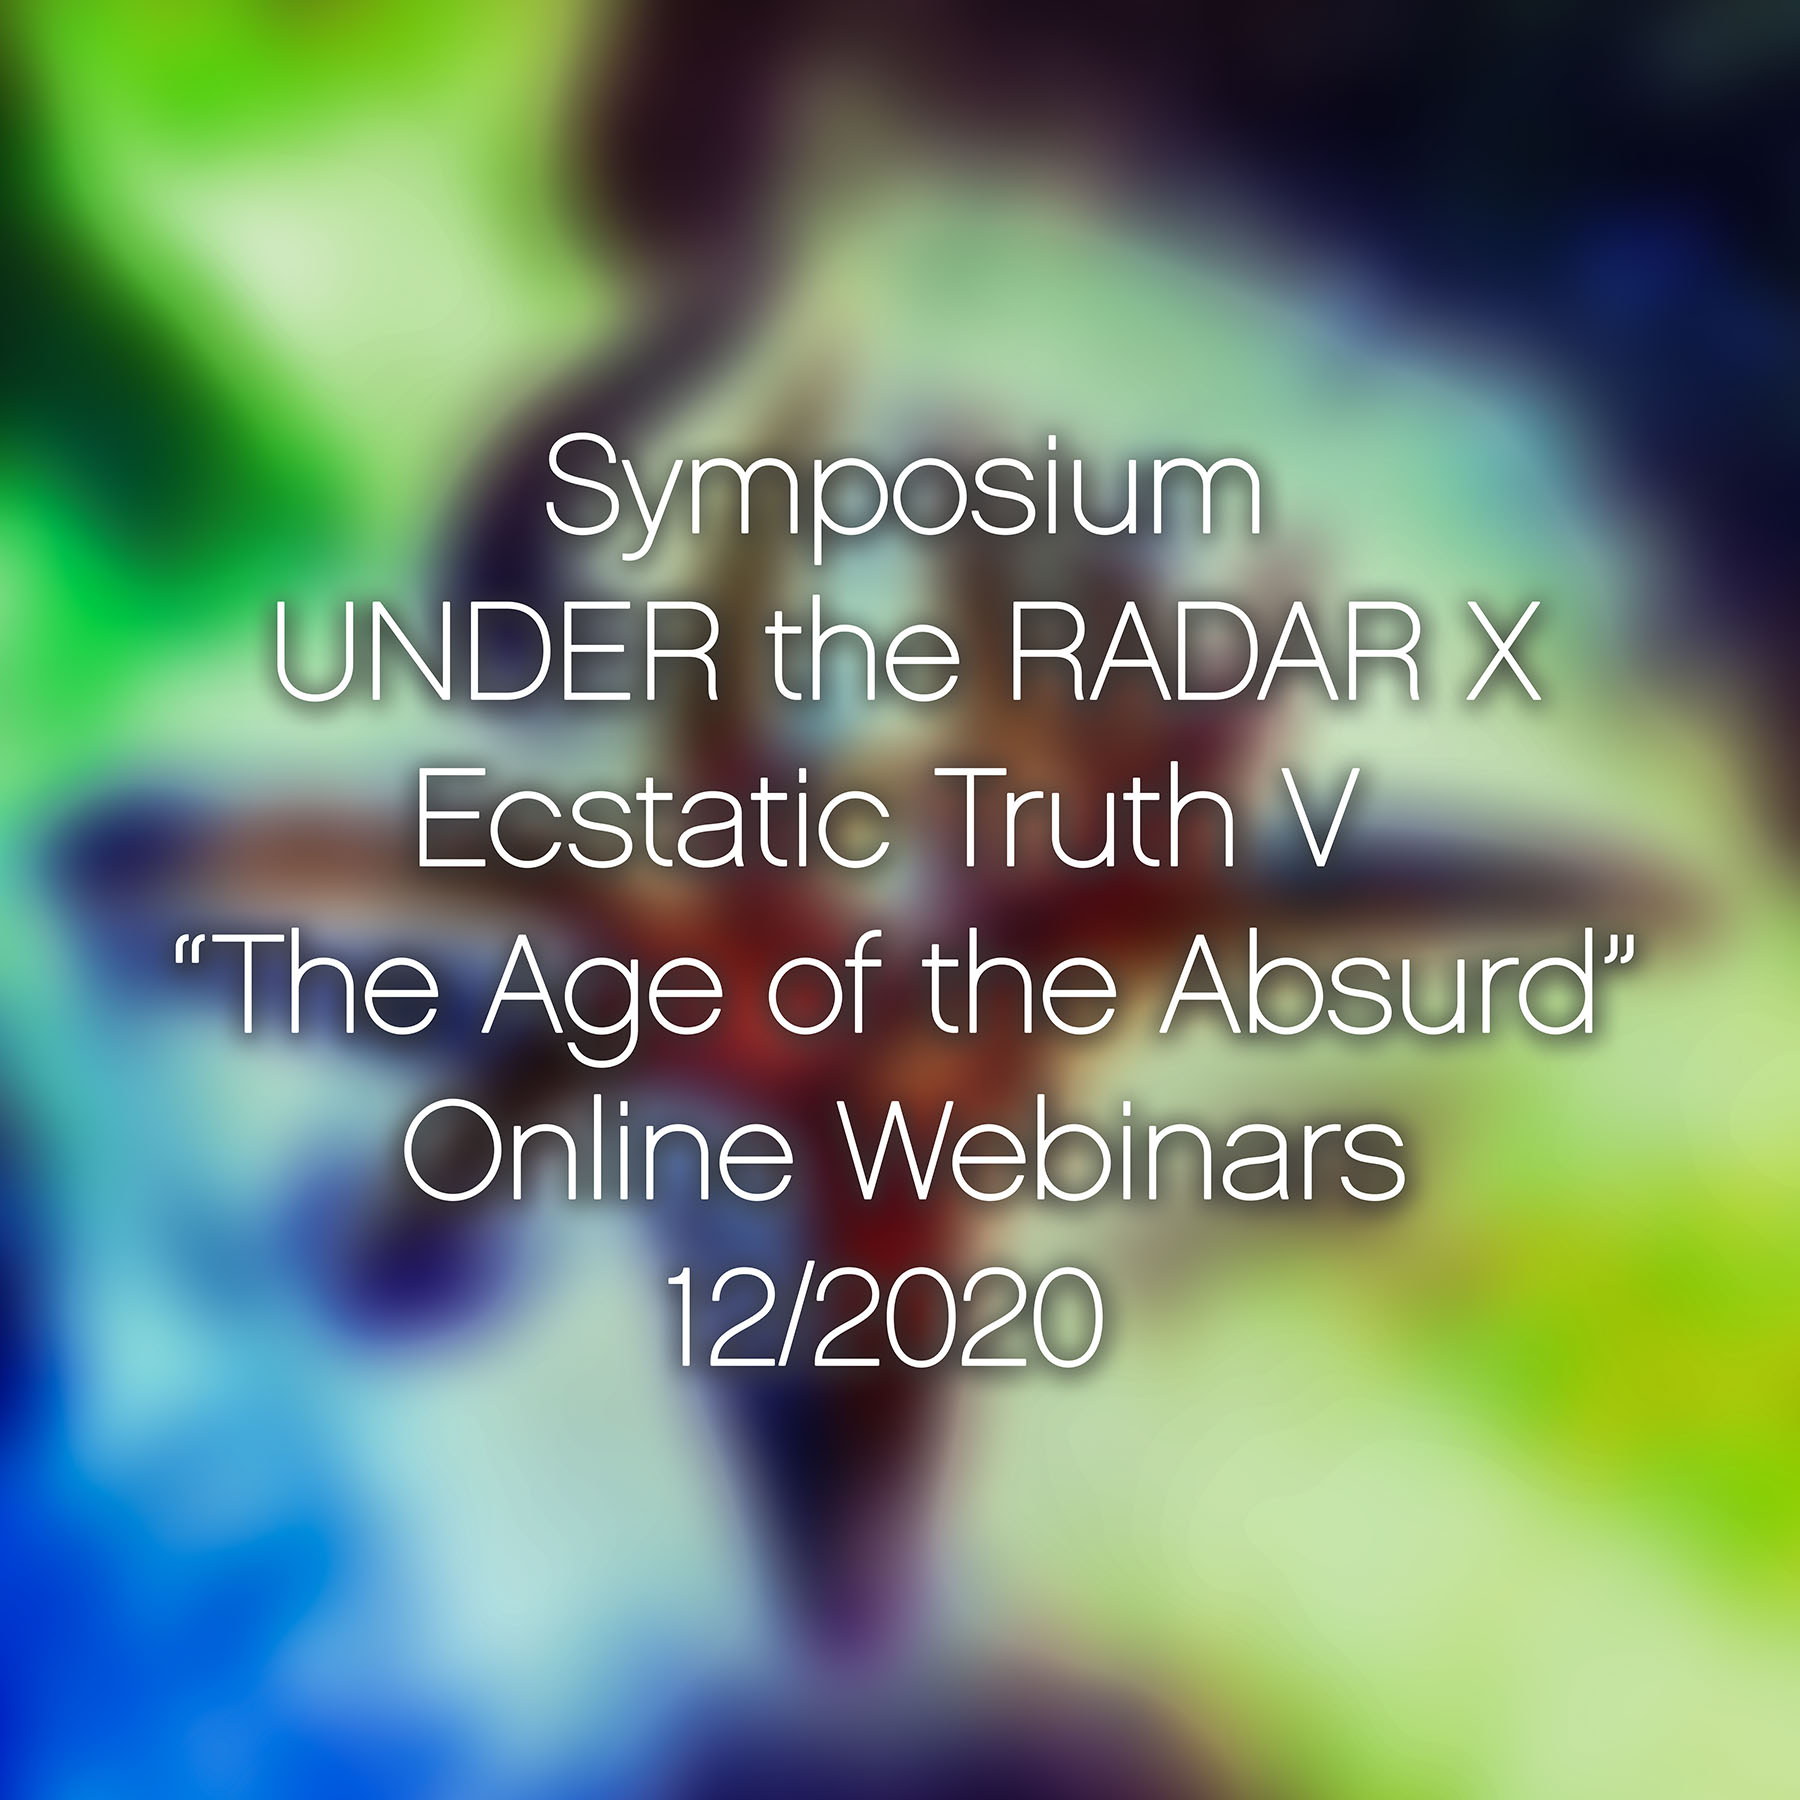 Ecstatic Truth: The Age of the Absurd (Online Webinars)